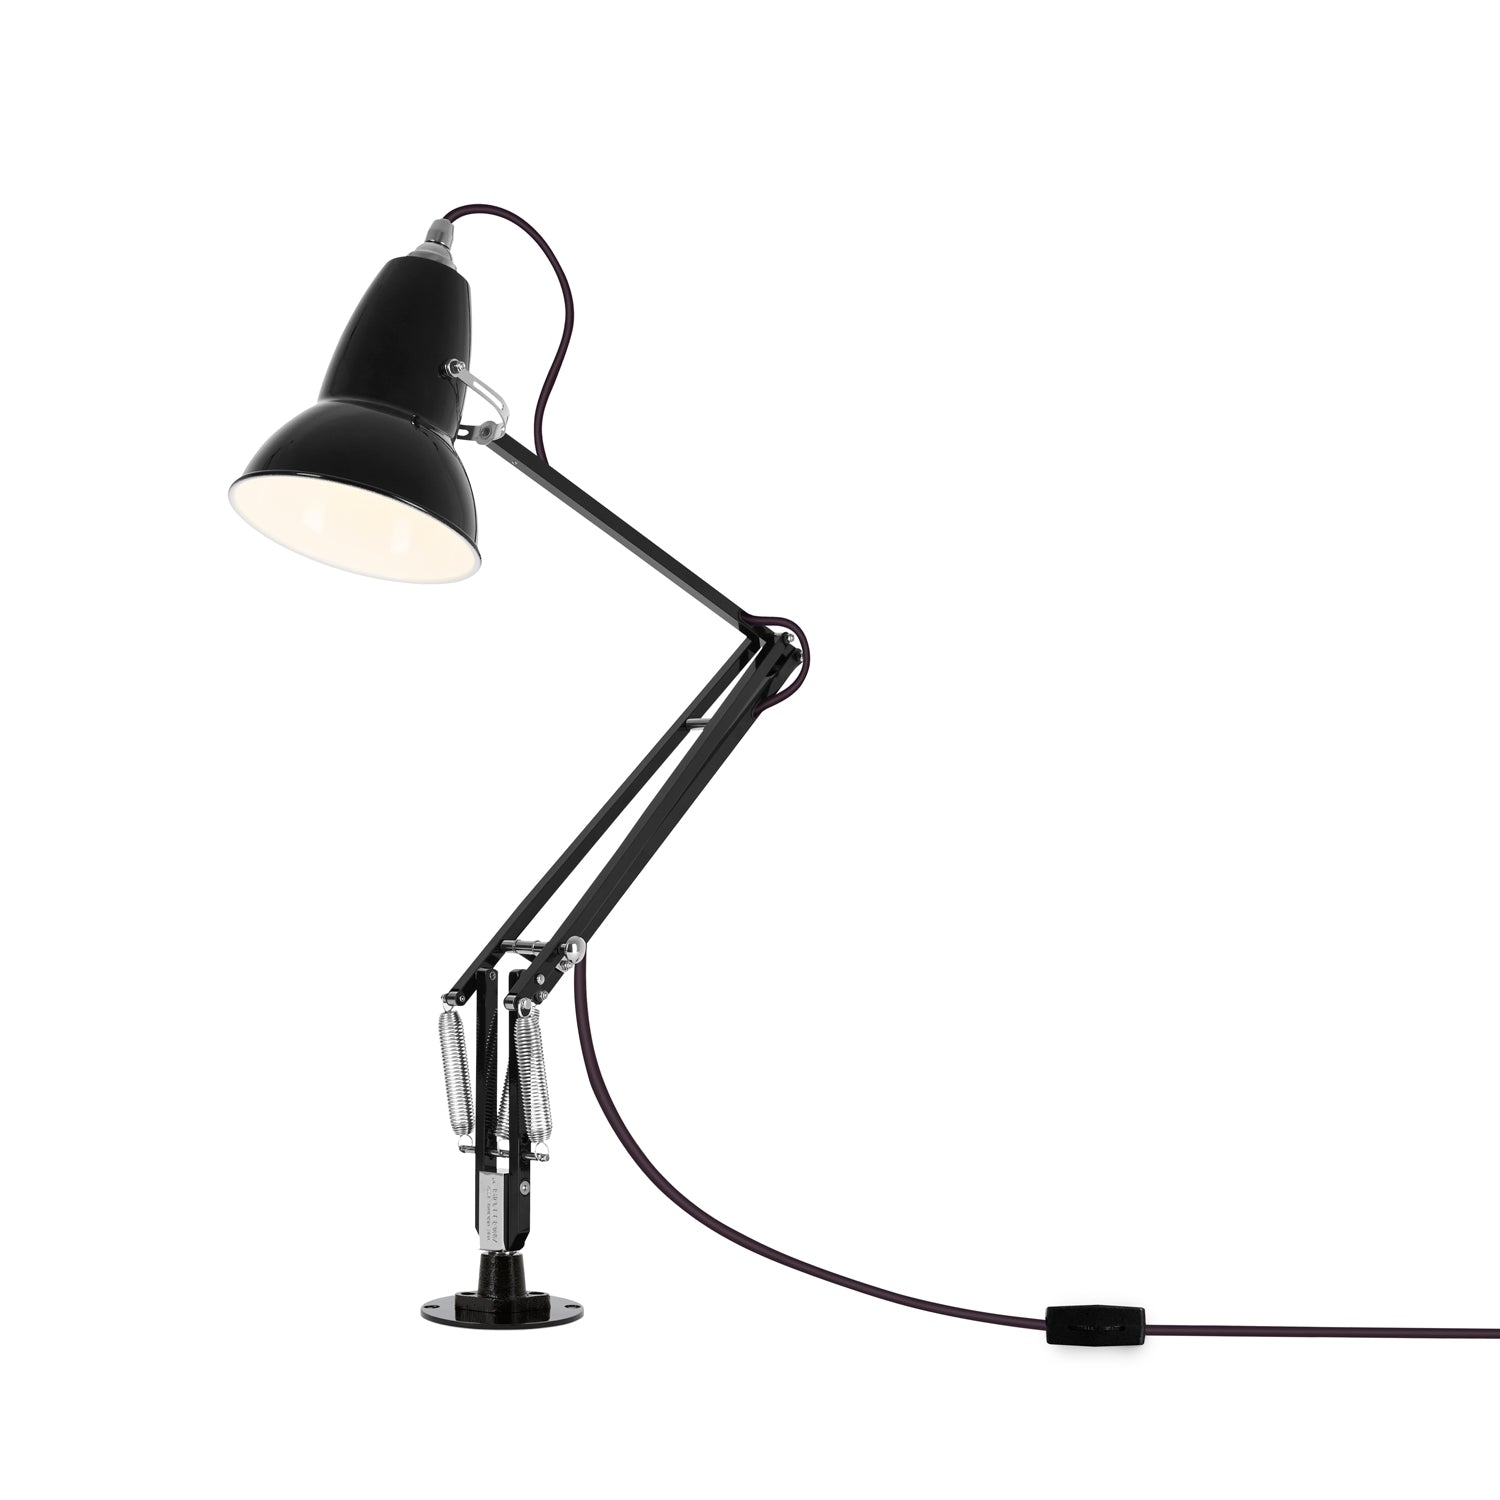 Anglepoise Original 1227 Desk Lamp with Desk Insert Jet Black